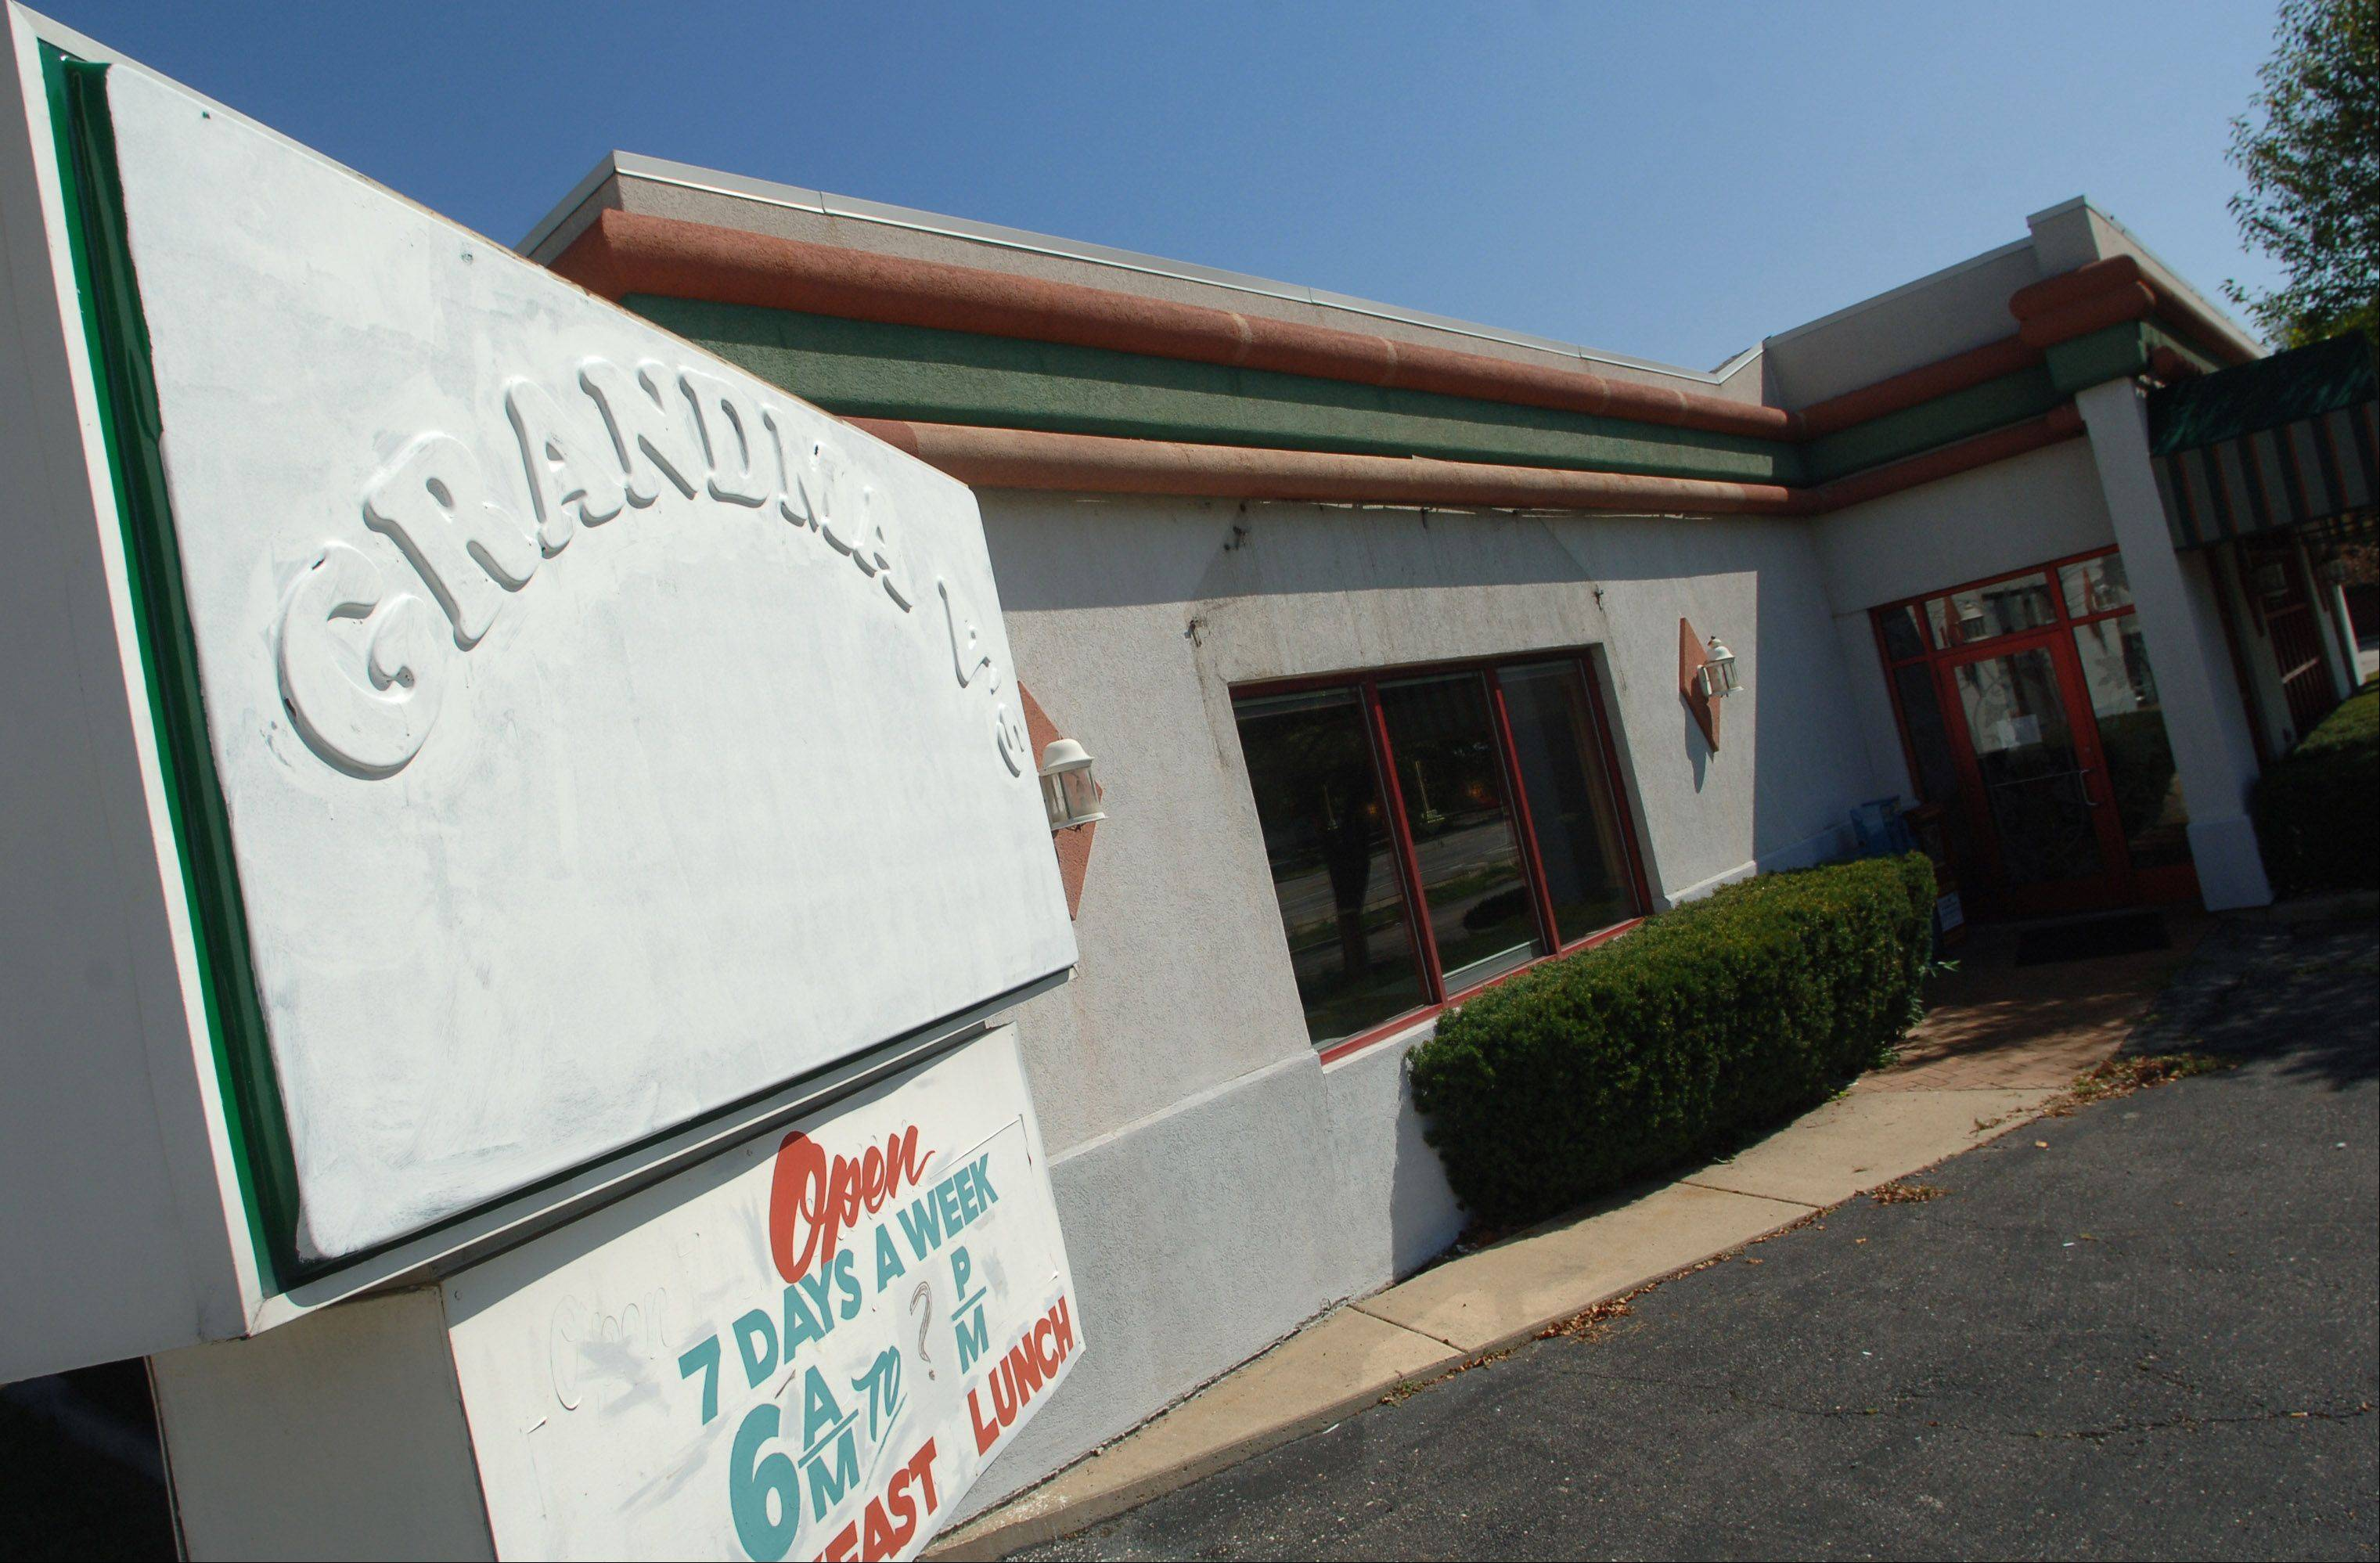 Grandma V's Pancake House restaurant in Mundelein recently closed but work is under way on a new venture.